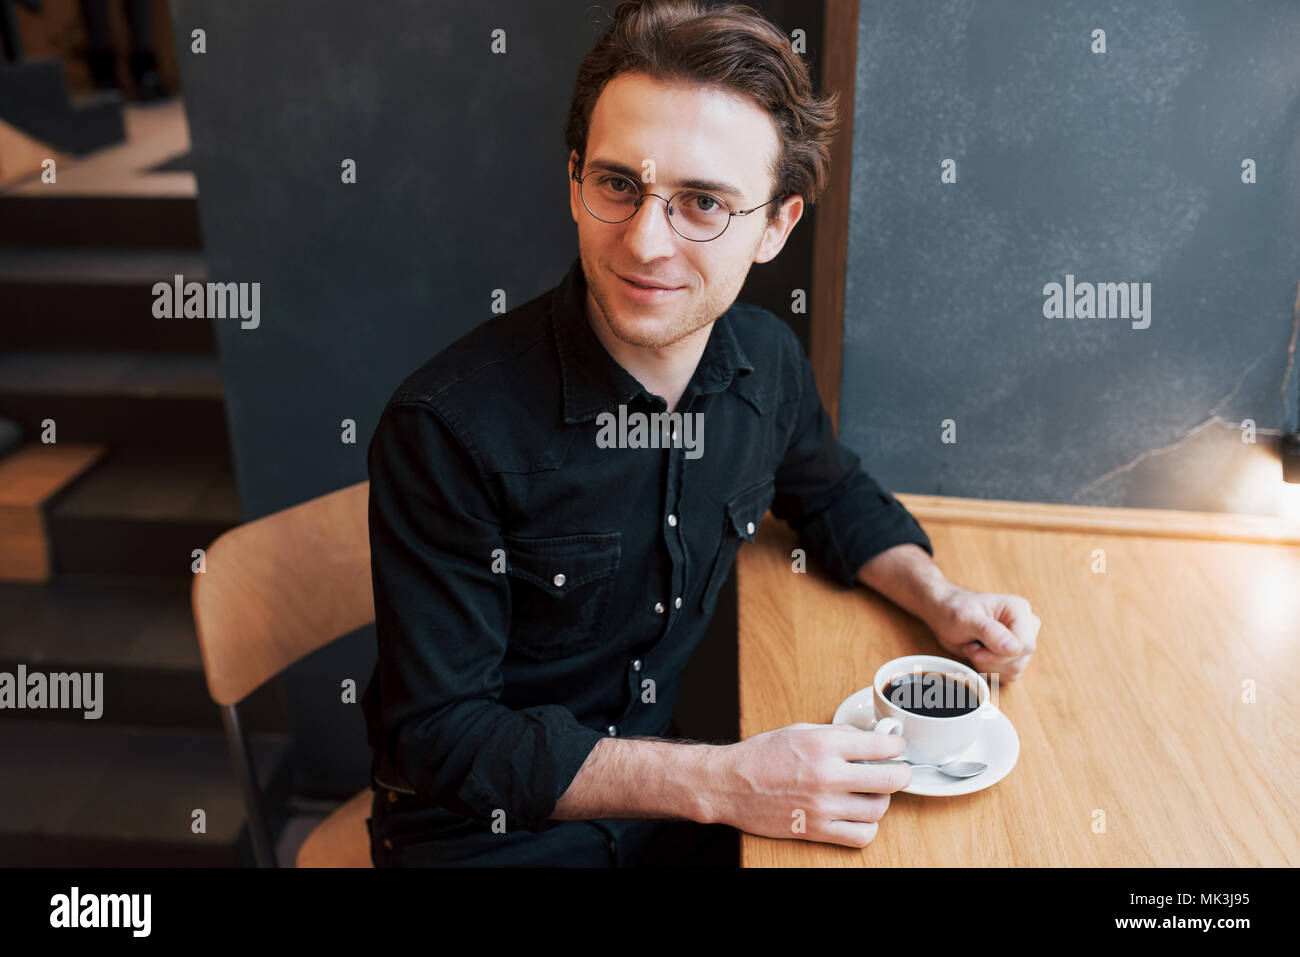 Handsome bearded man in checked shirt holding fork eating in cafe and smiling looking at camera - Stock Image